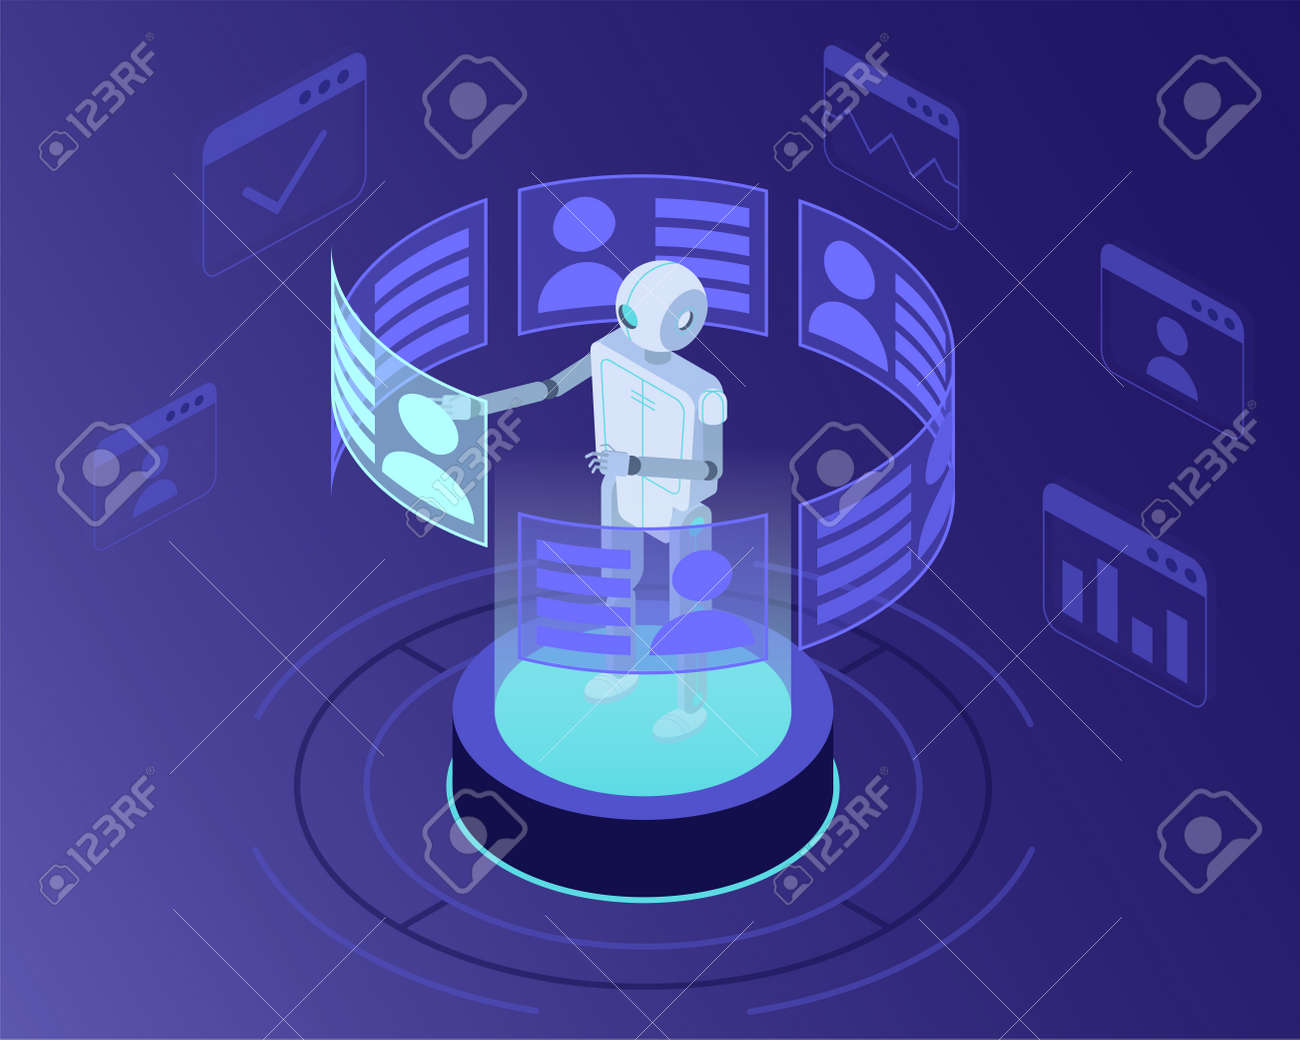 Isometric vector illustration of robot recruiter searching for candidates for a job - 161957794